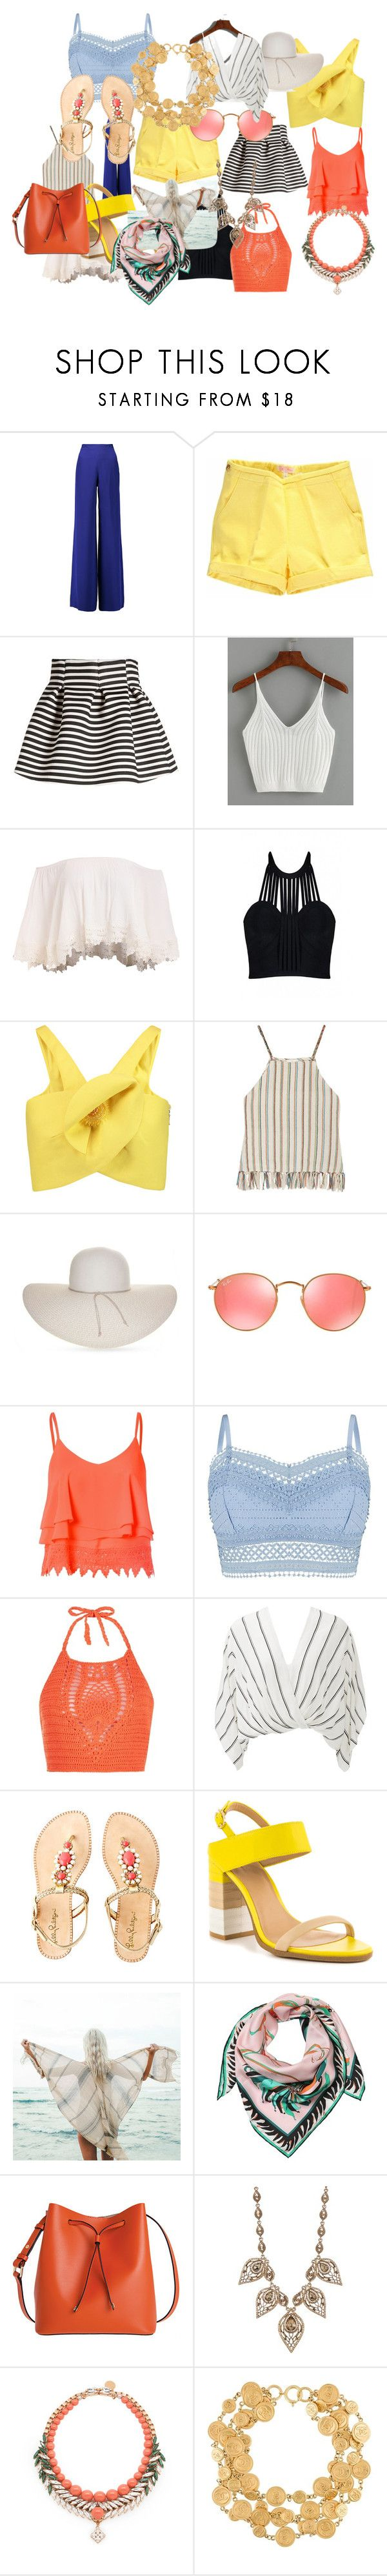 capsule suitcase by ella-vanger on Polyvore featuring Delpozo, Miguelina, Posh Girl, Lipsy, Free People, Glamorous, New Look, Emilio Pucci, Molo and Lilly Pulitzer